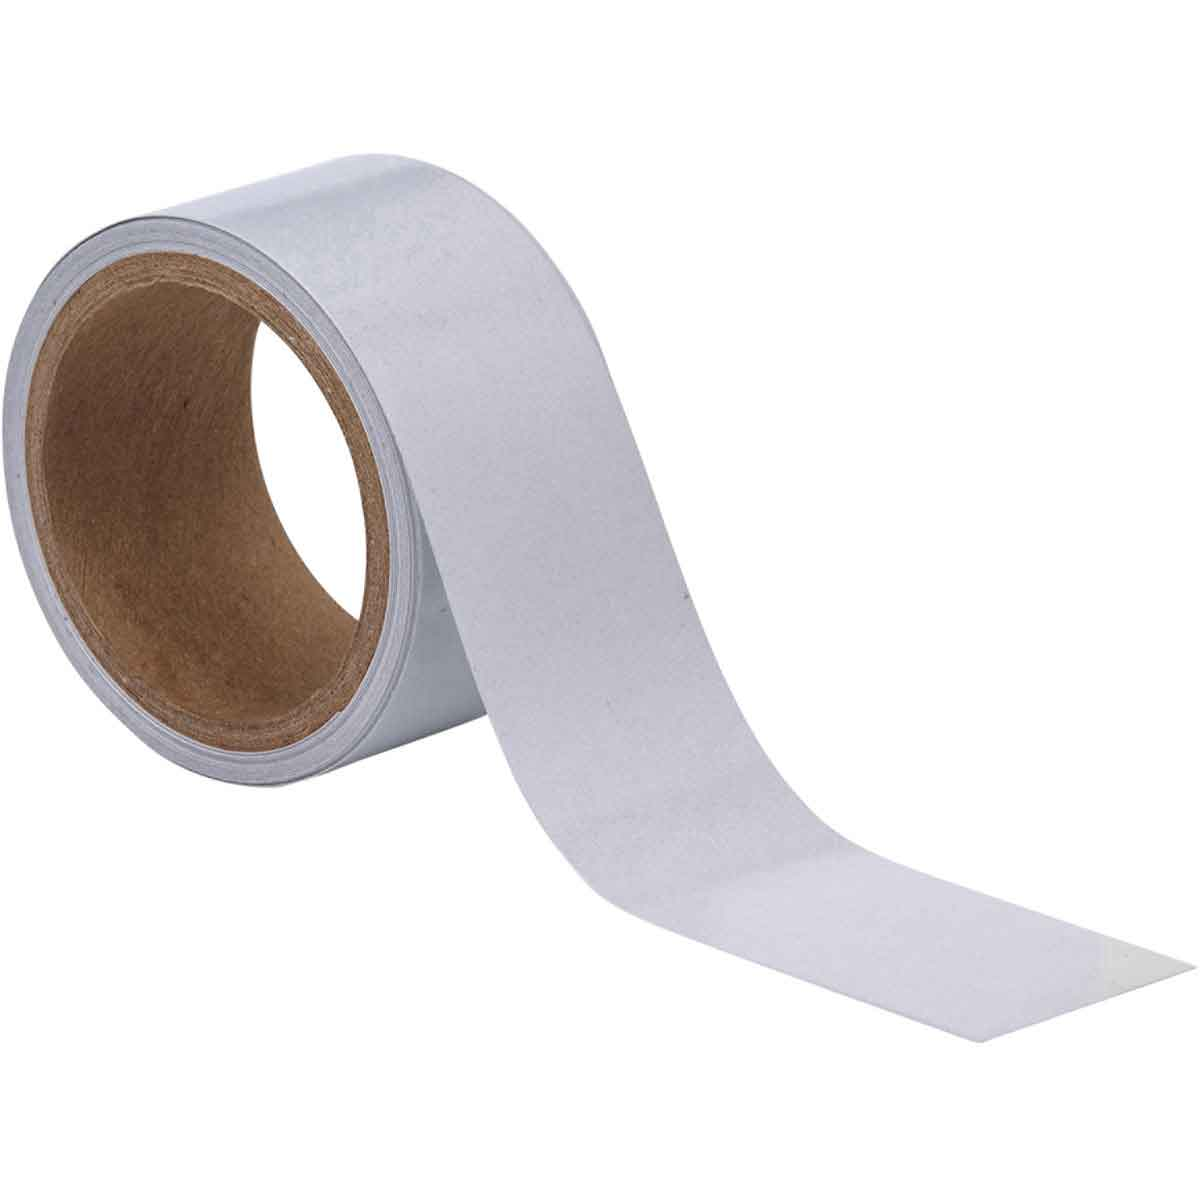 BRADY 78985 REFLECTIVE SOLID COLORTAPE